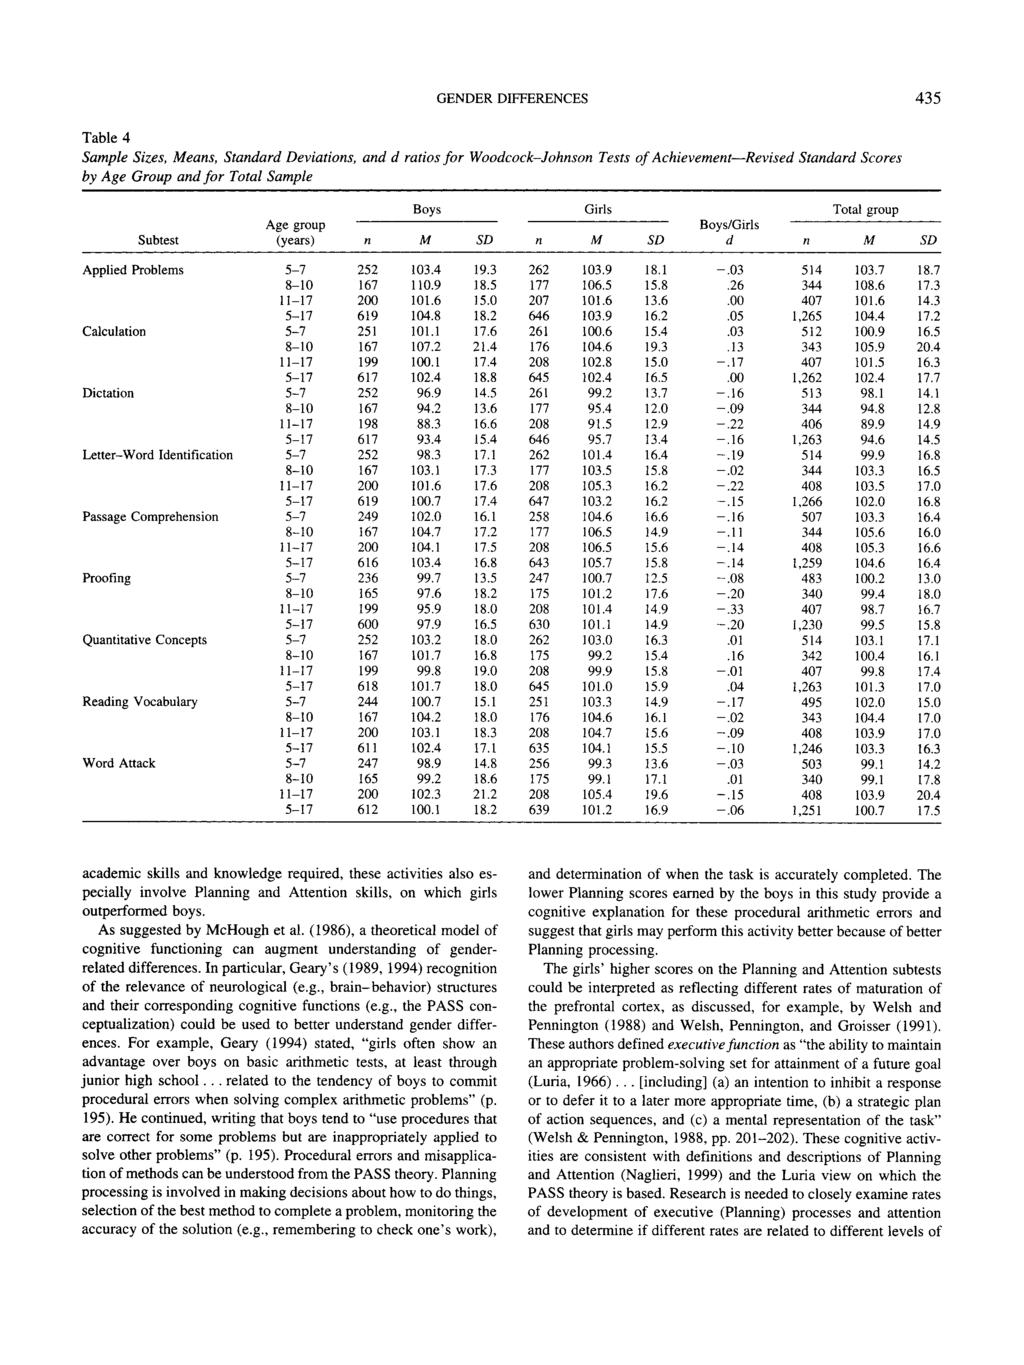 GENDER DIFFERENCES 435 Table 4 Sample Sizes, eas, Stadard Deviatios, ad d ratios for Woodcock-Johso Tests of Achievemet Revised Stadard Scores by Age Group ad for Total Sample Subtest Age group